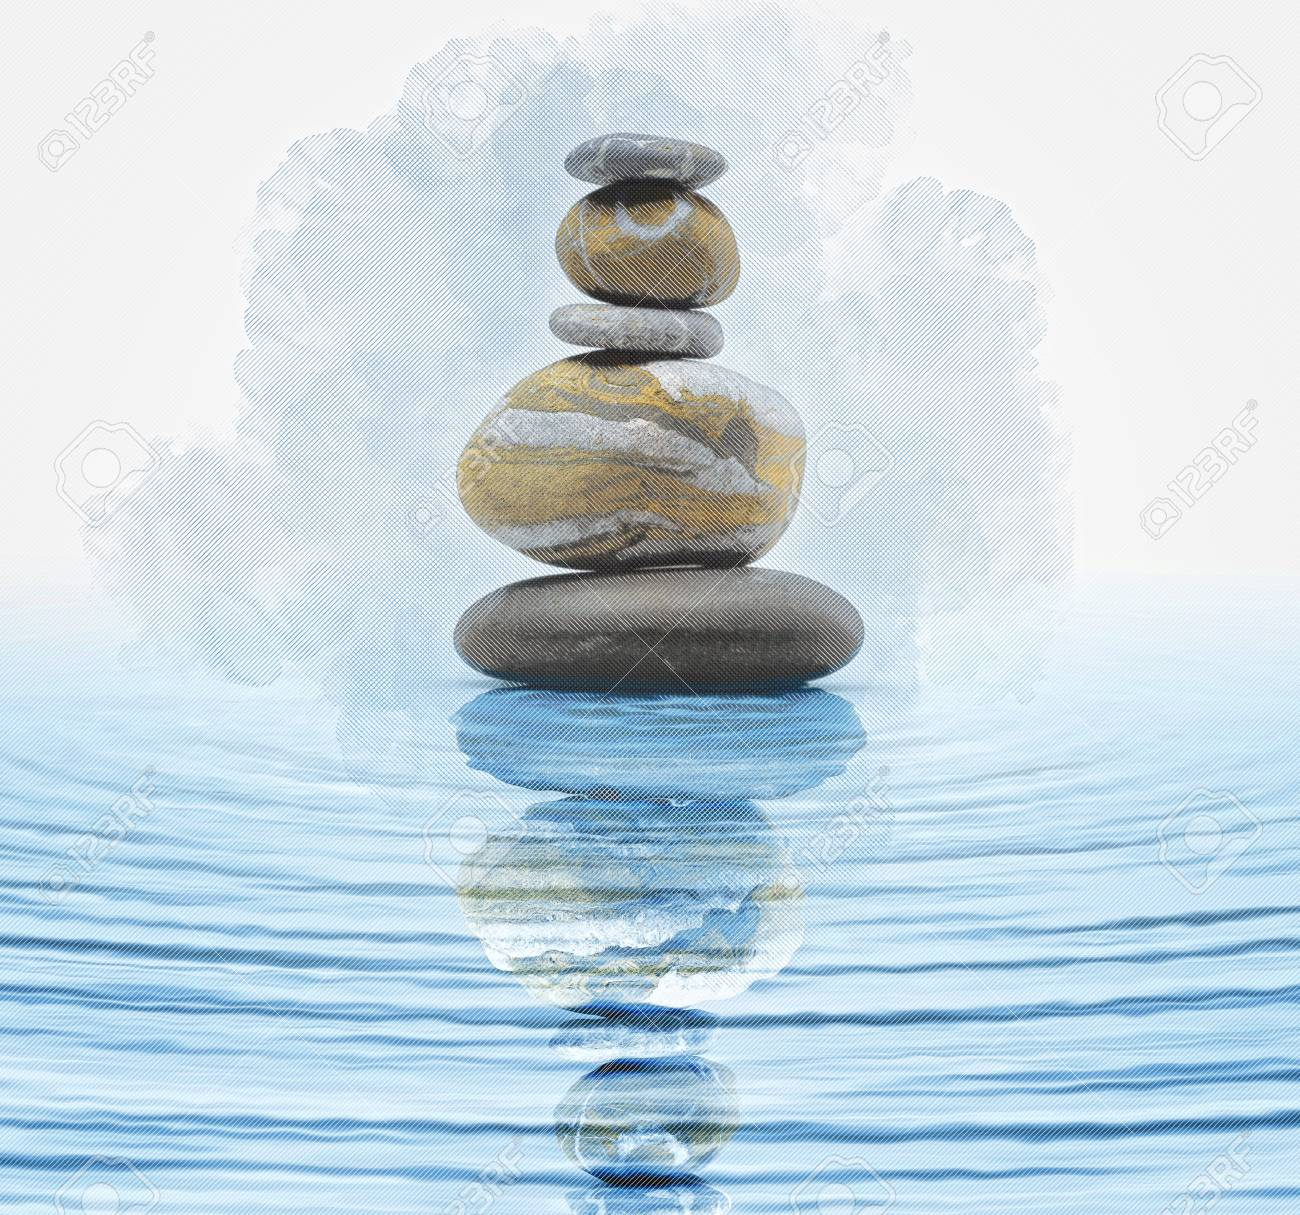 Zen Stones In Water Stock Photo Picture And Royalty Free Image